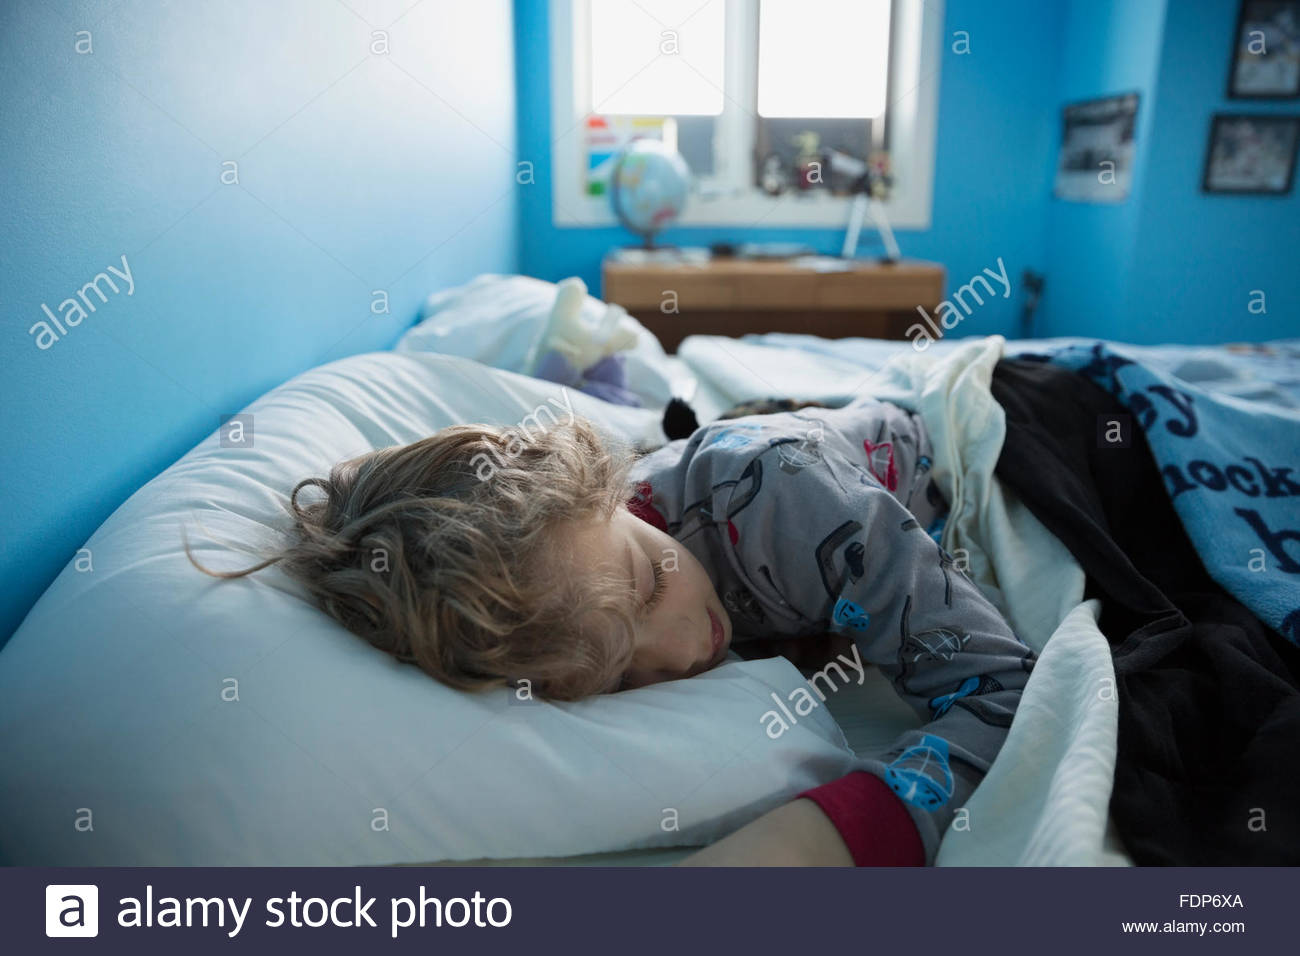 Boy sleeping in bed - Stock Image